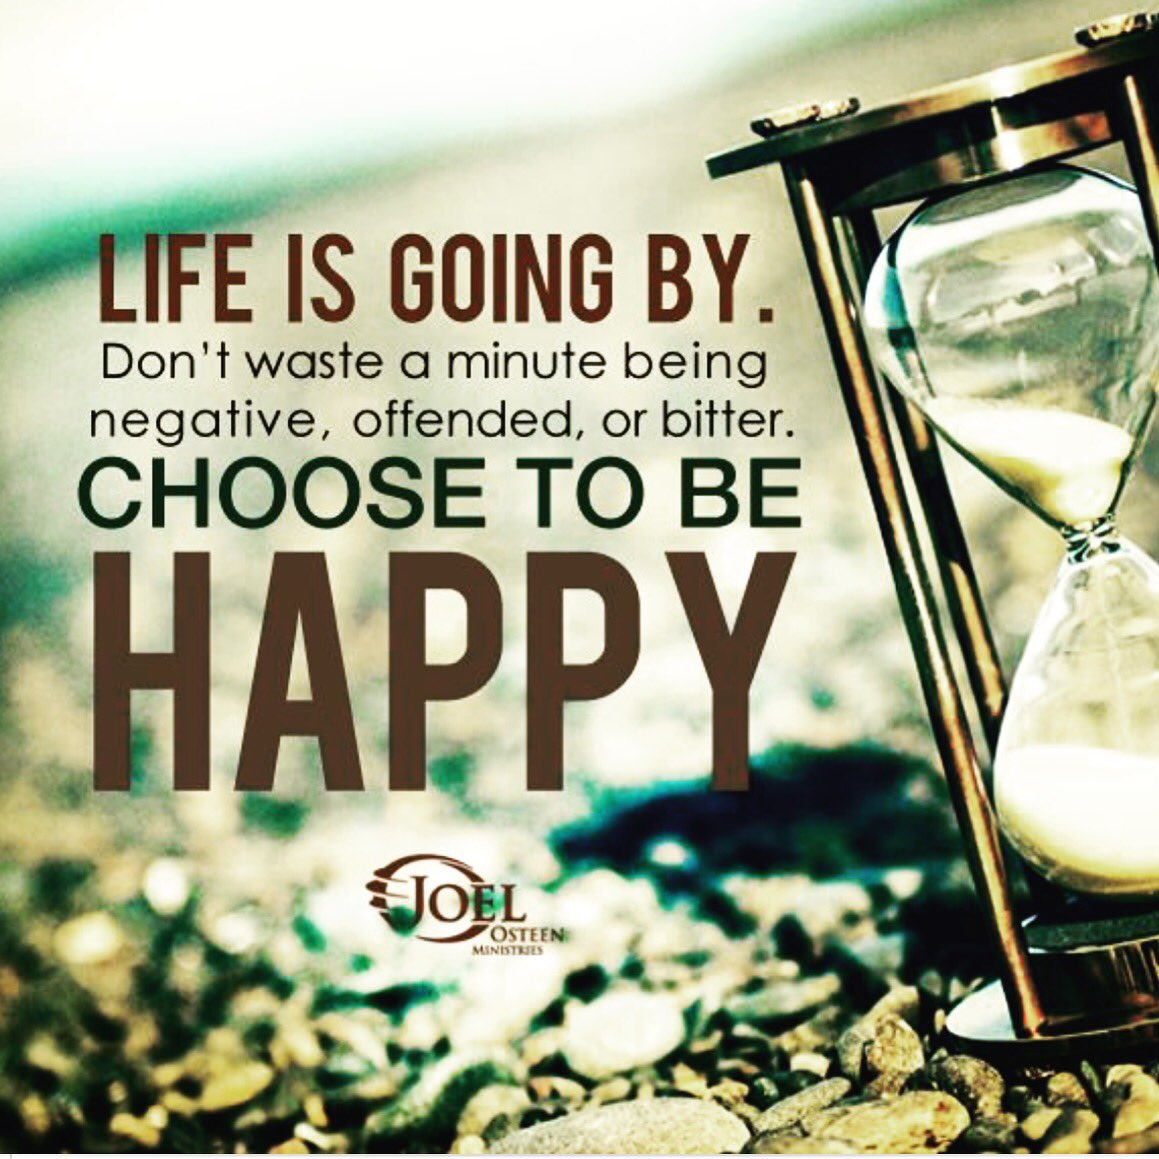 &quot;Choose to be happy&quot; #quotes #quoteoftheday #quotestoliveby #quotestoinspire #happiness #happinessquotes #message #realtalk<br>http://pic.twitter.com/9dQXaF1uR3